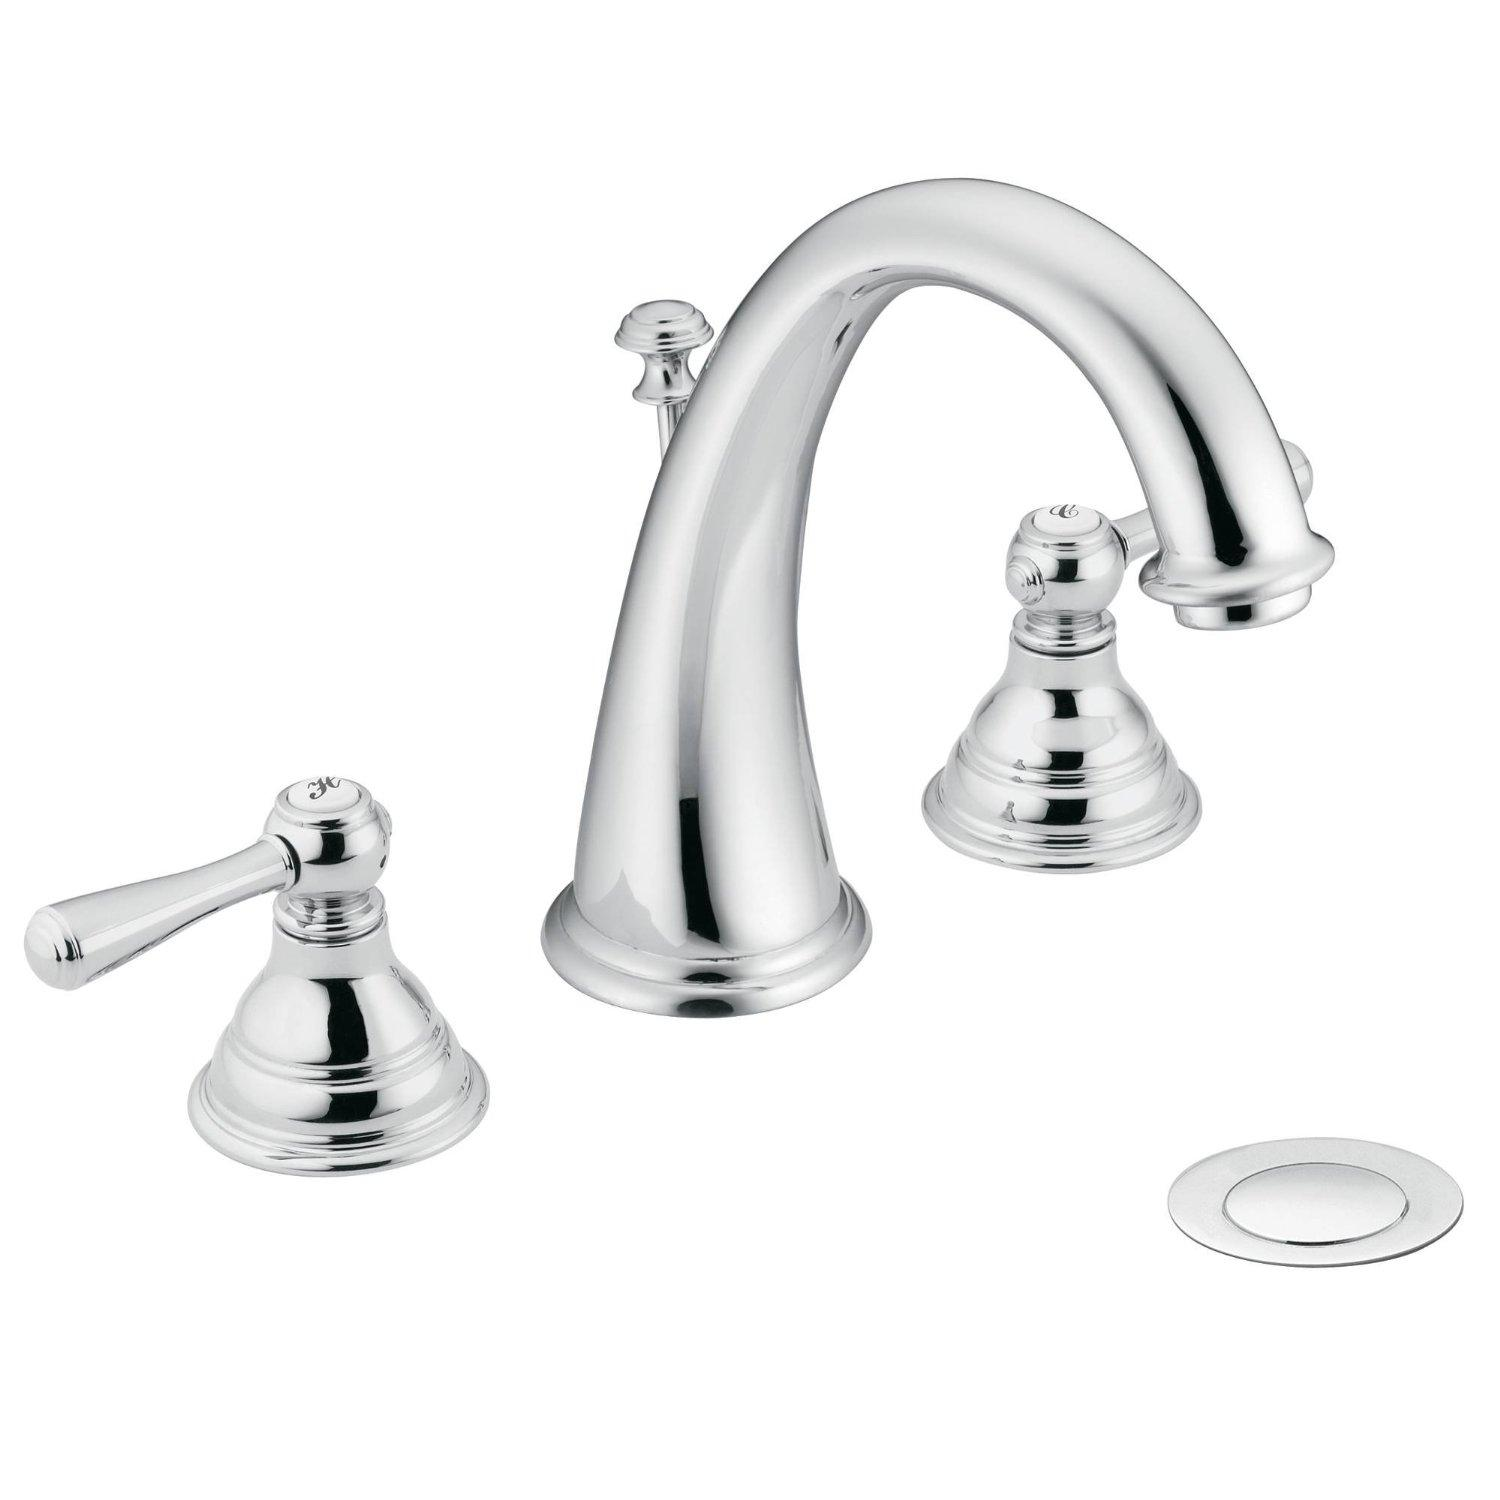 Moen T6125 Kingsley Two-Handle High-Arc Widespread Bathroom Faucet ...